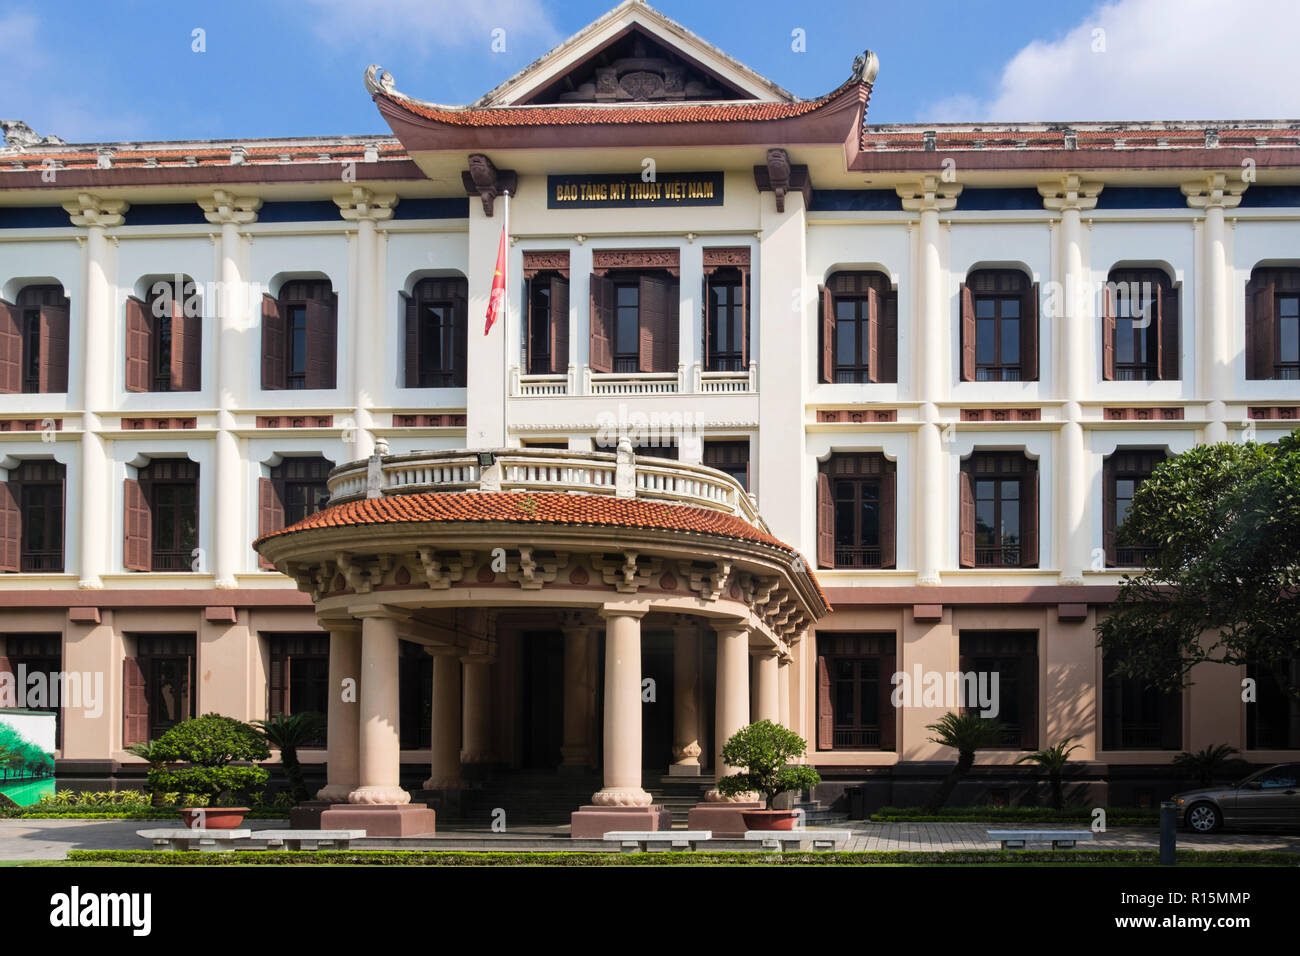 Front entrance to National Museum of Fine Arts or Bao Tang My Thuat. Hanoi, Vietnam, Asia - Stock Image